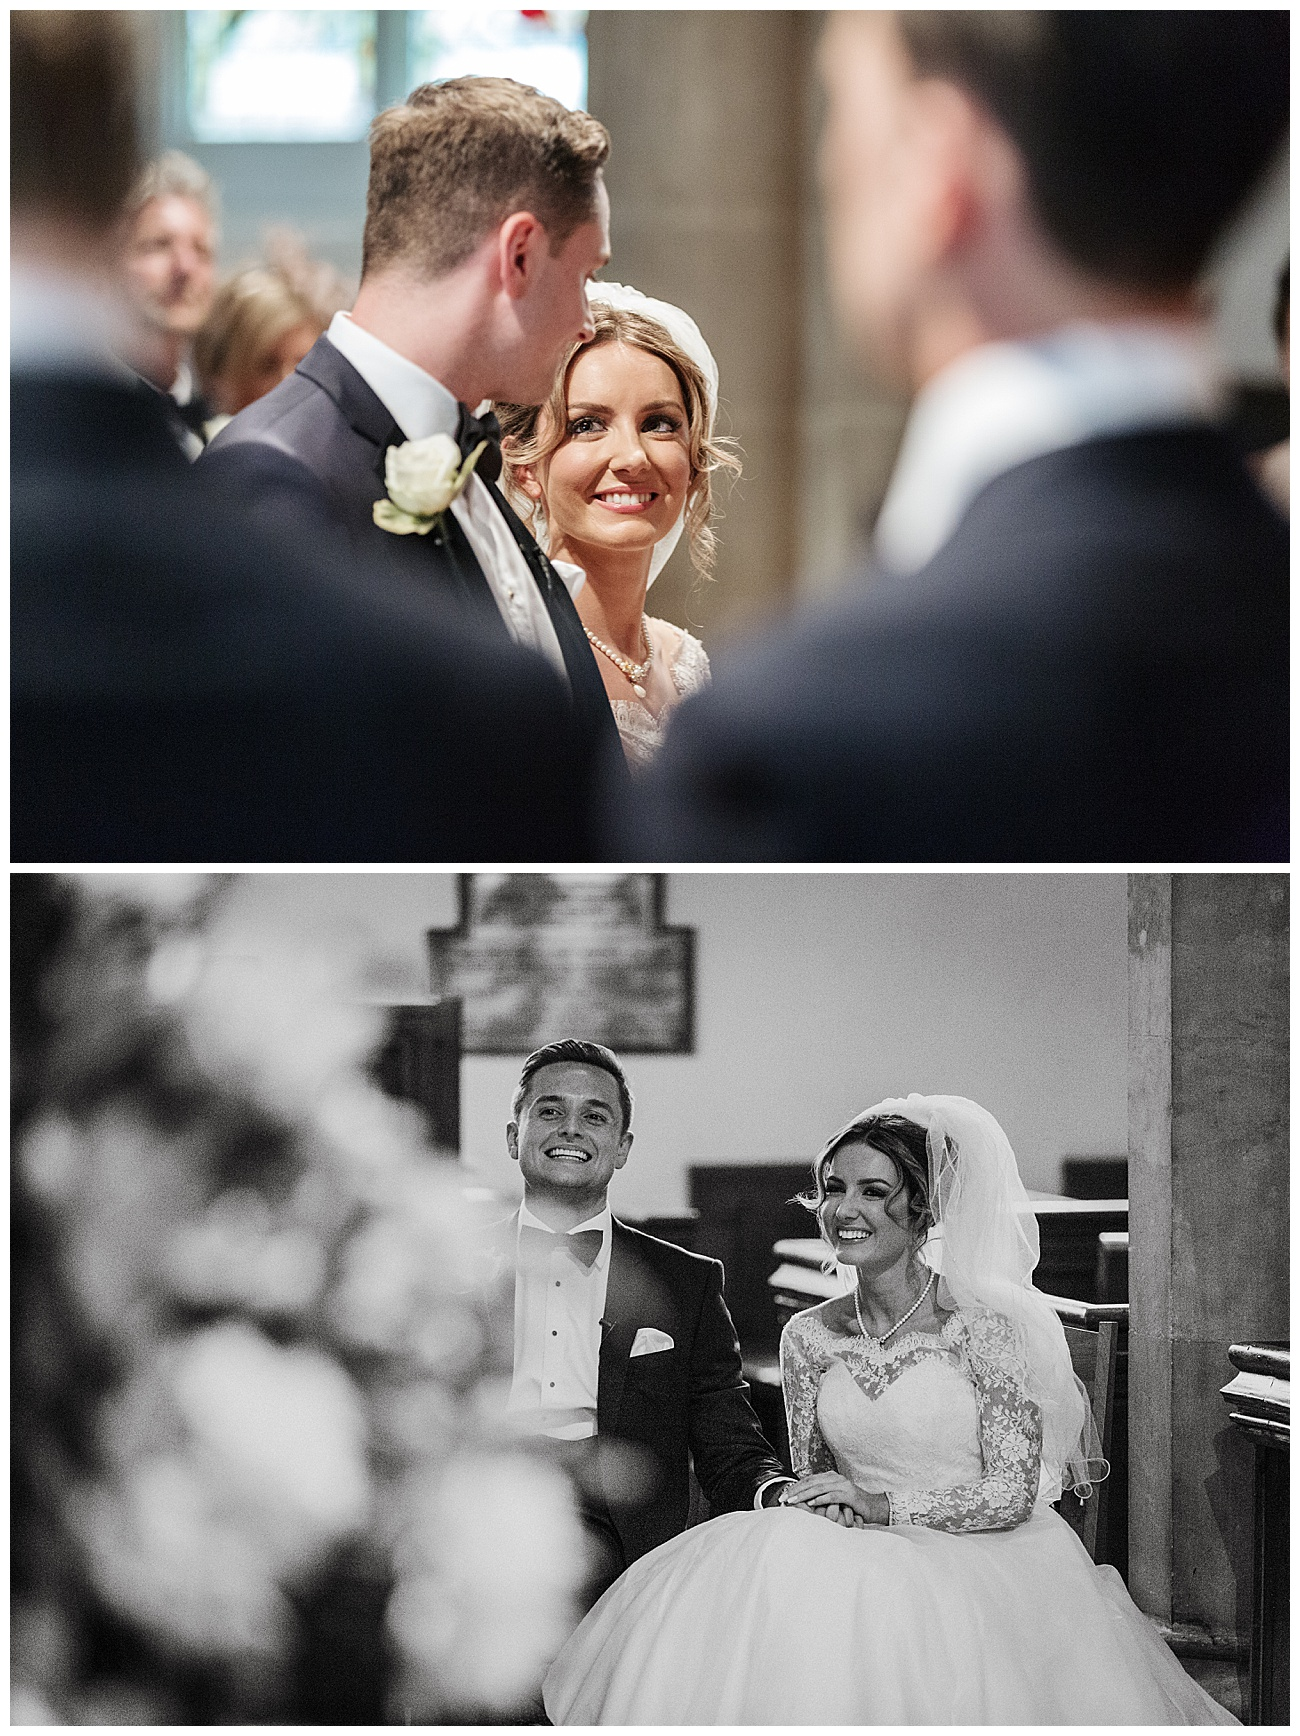 bride looks lovingly at the groom during the ceremony and enjoys a joke while taking a seat